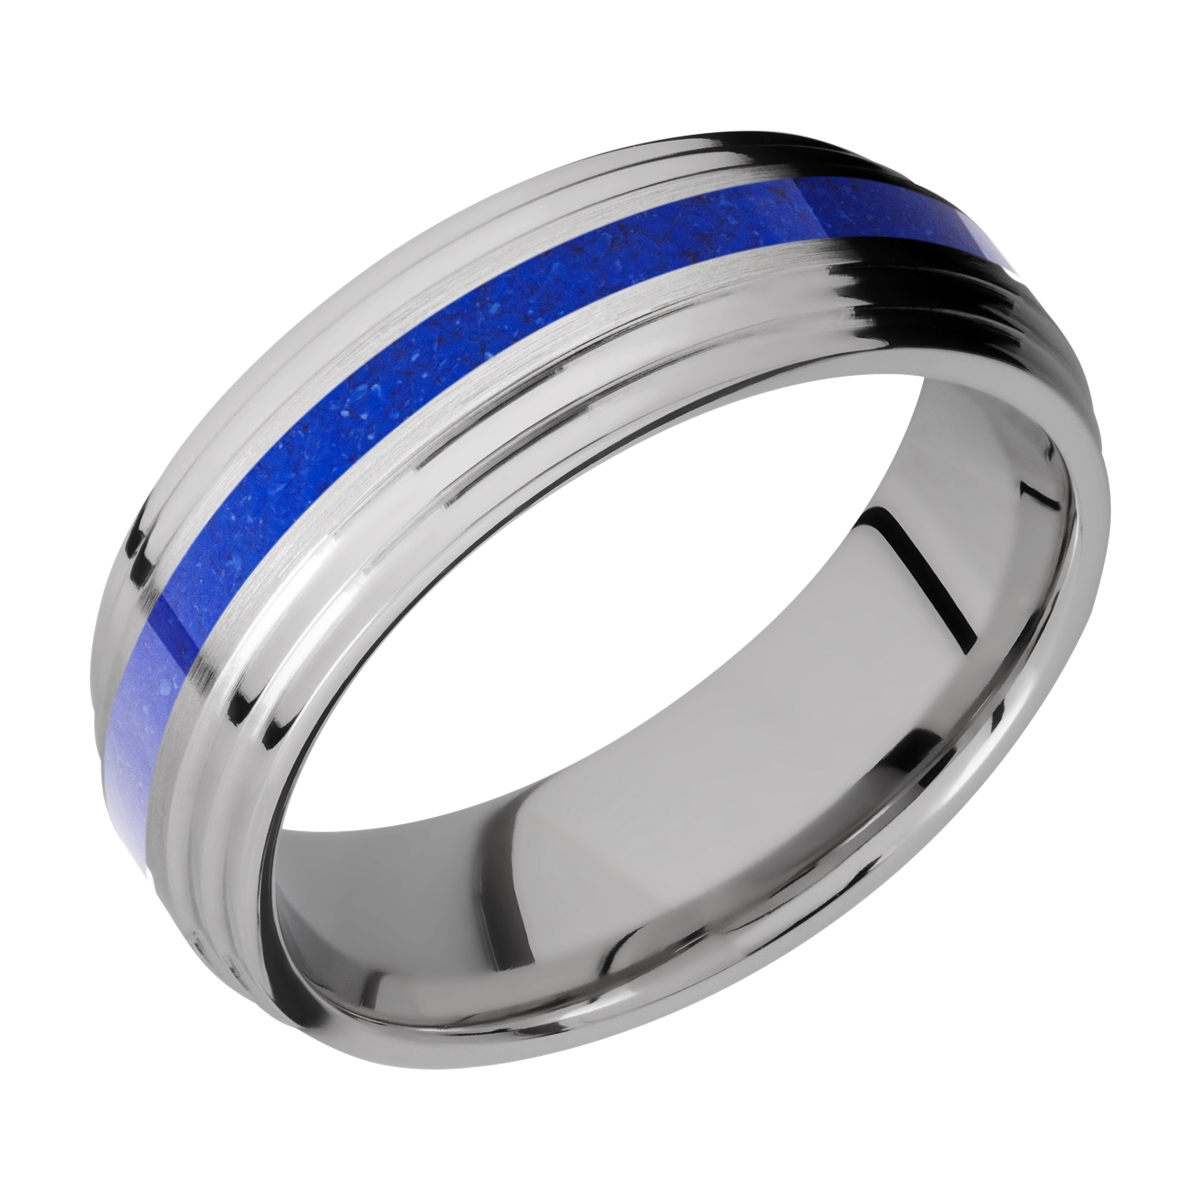 Lashbrook 7F2S12/MOSAIC Titanium Wedding Ring or Band